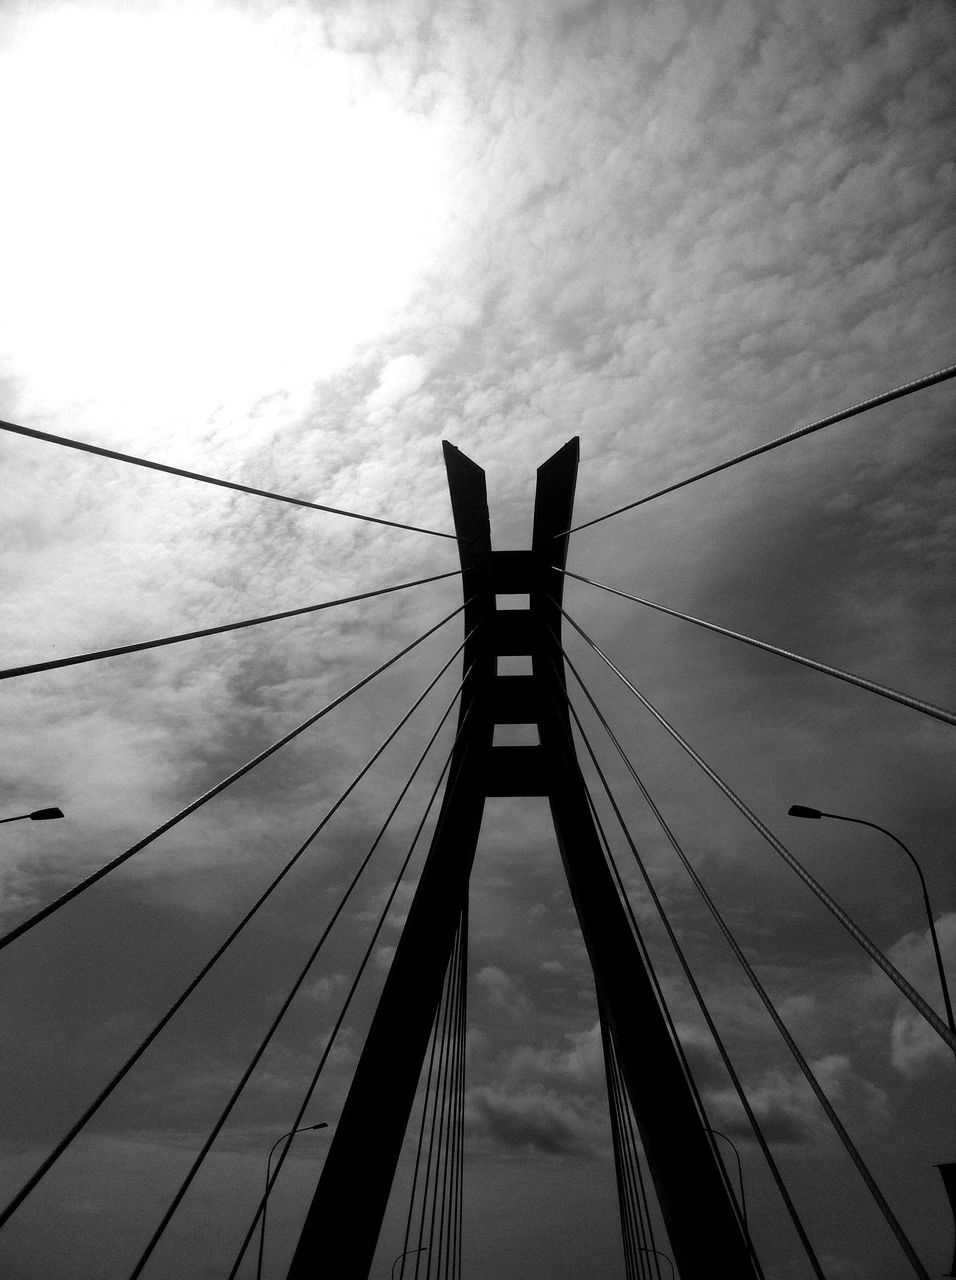 connection, sky, suspension bridge, architecture, low angle view, built structure, bridge - man made structure, cable, no people, outdoors, city, day